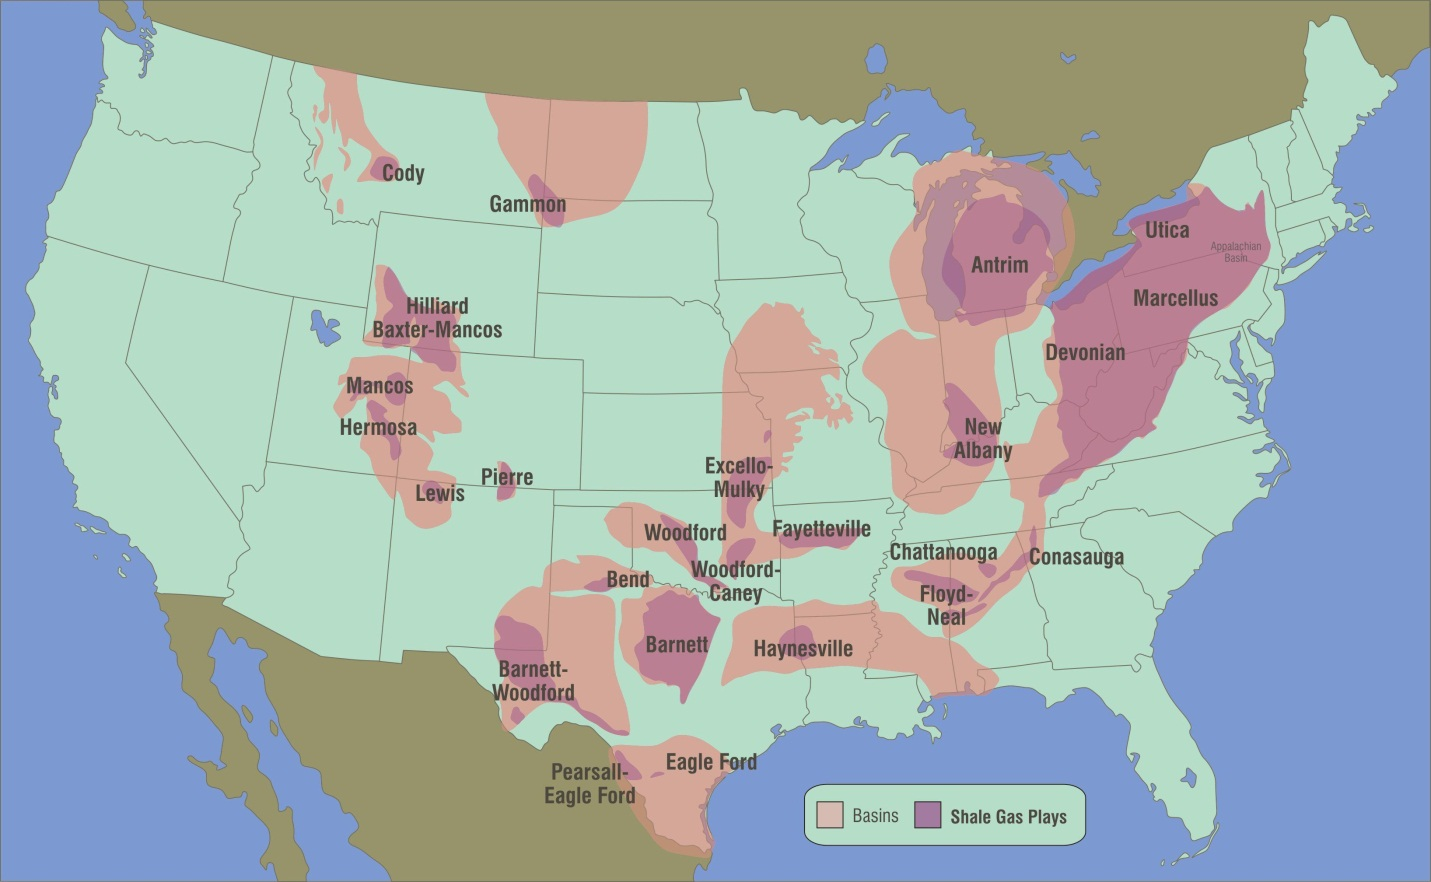 USA Map Of Oil Gas Drilling Fracking Sites And Health Safety - Map us oil fields